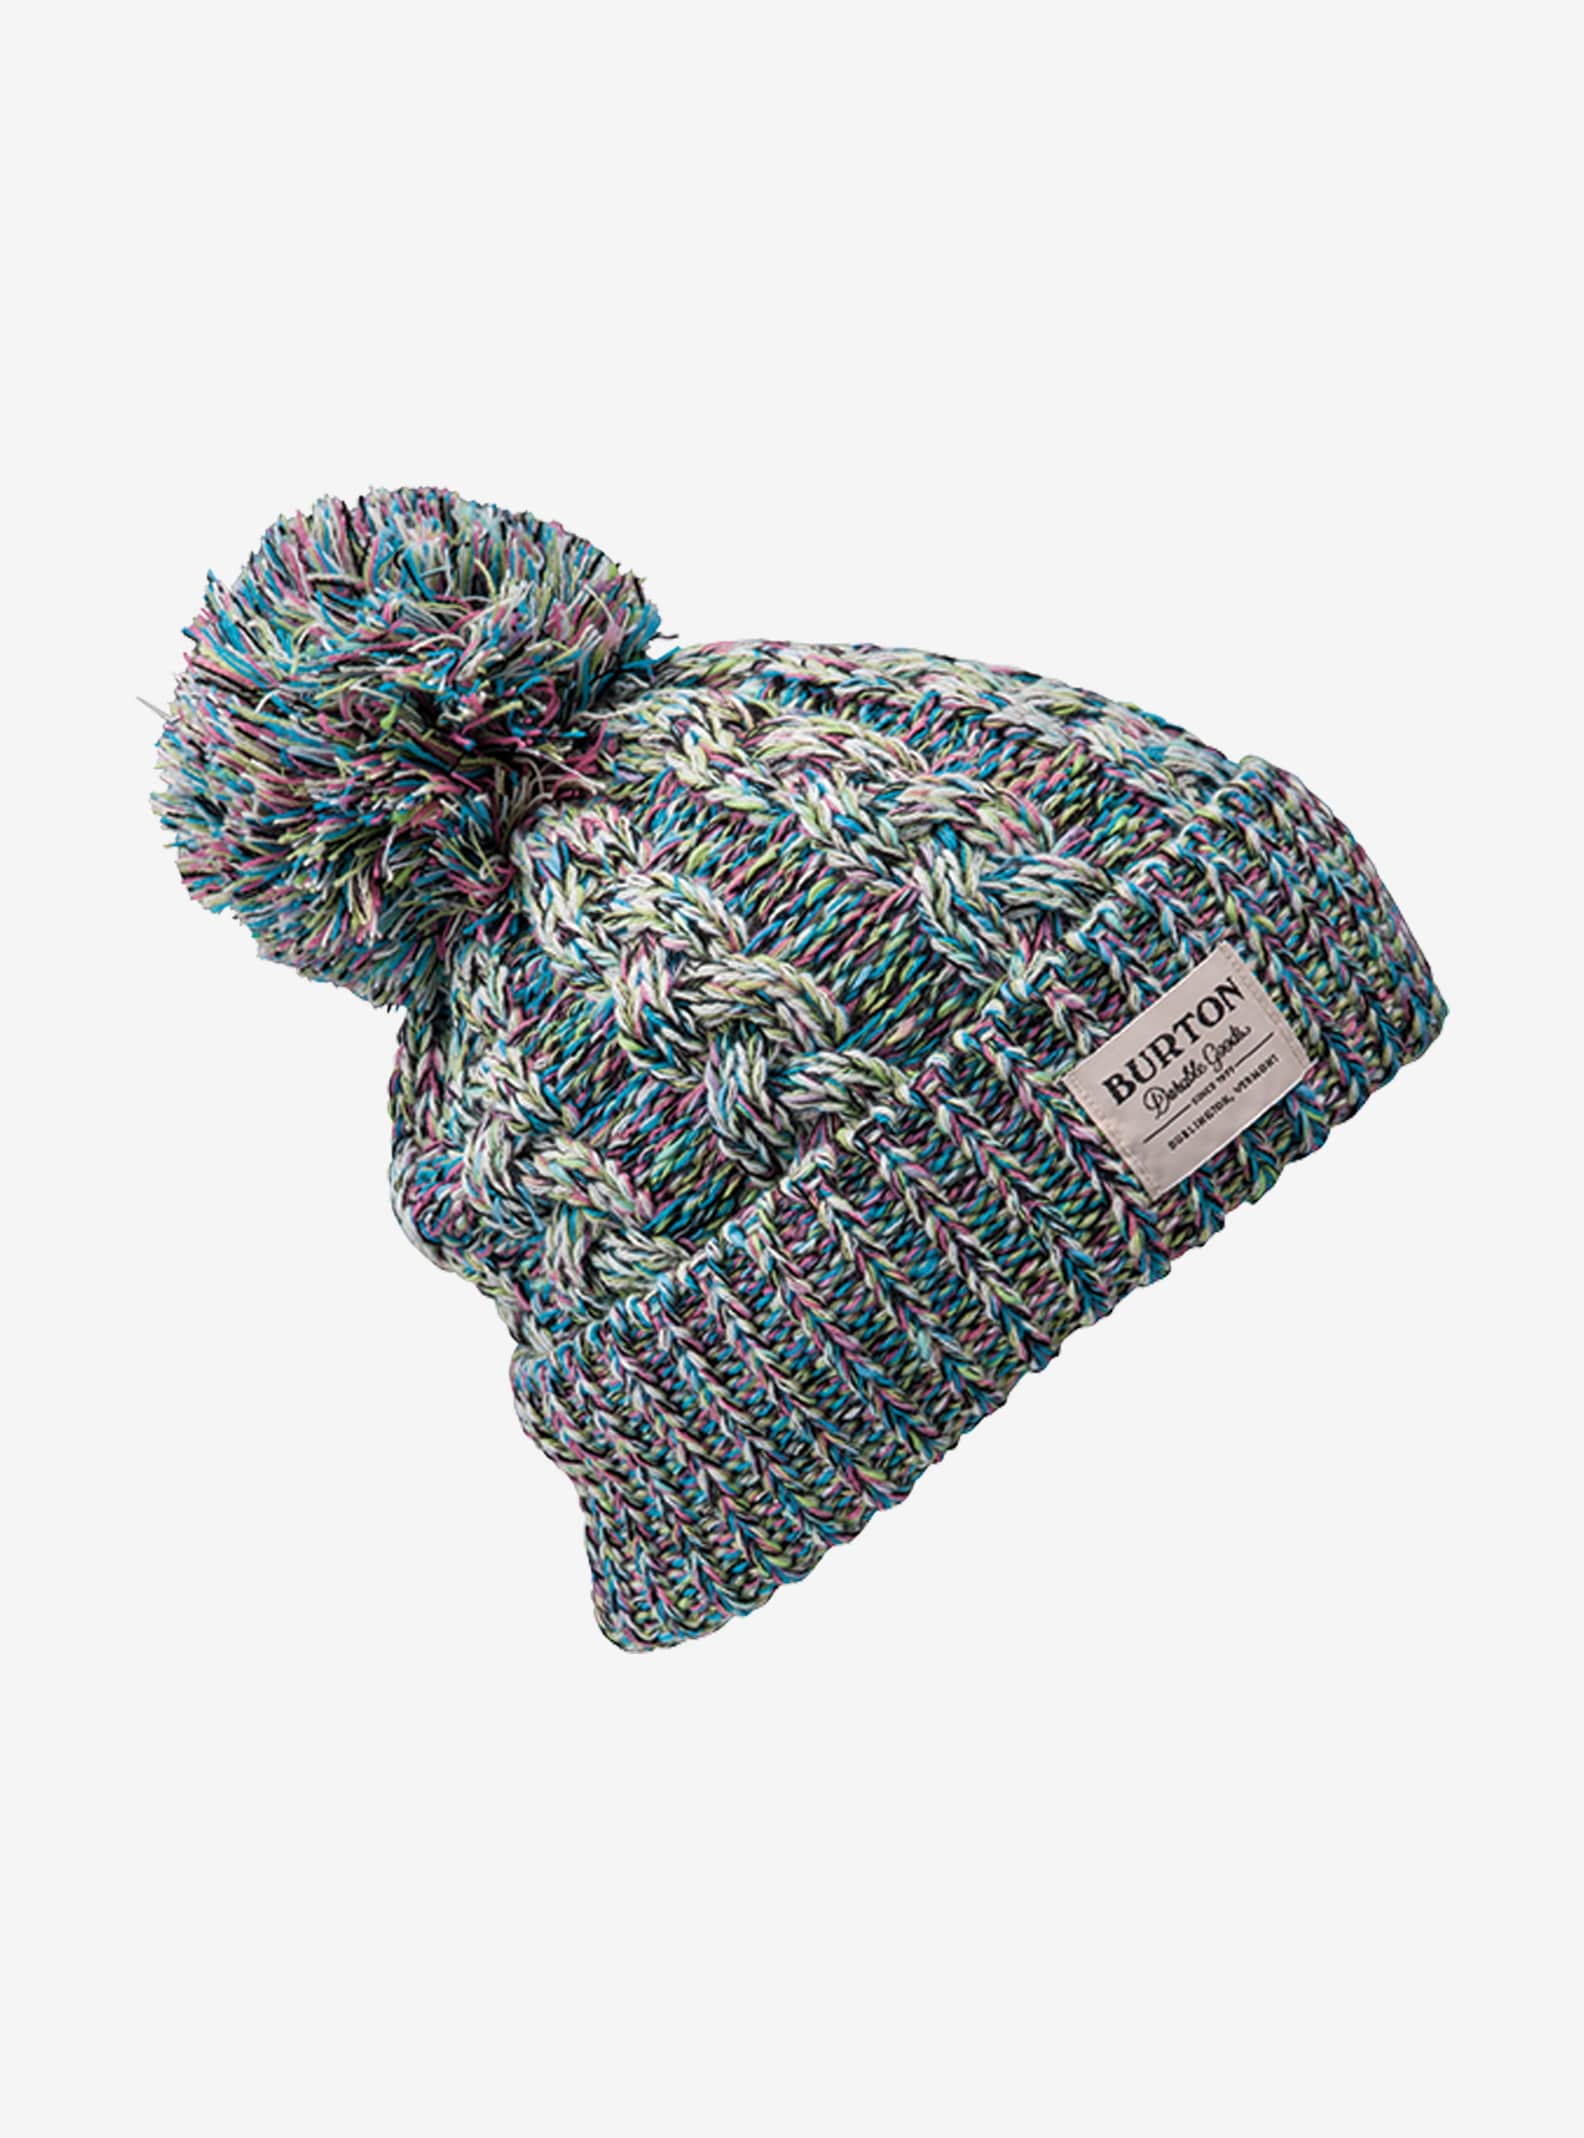 Women's Burton Zippy Beanie shown in Lacrose